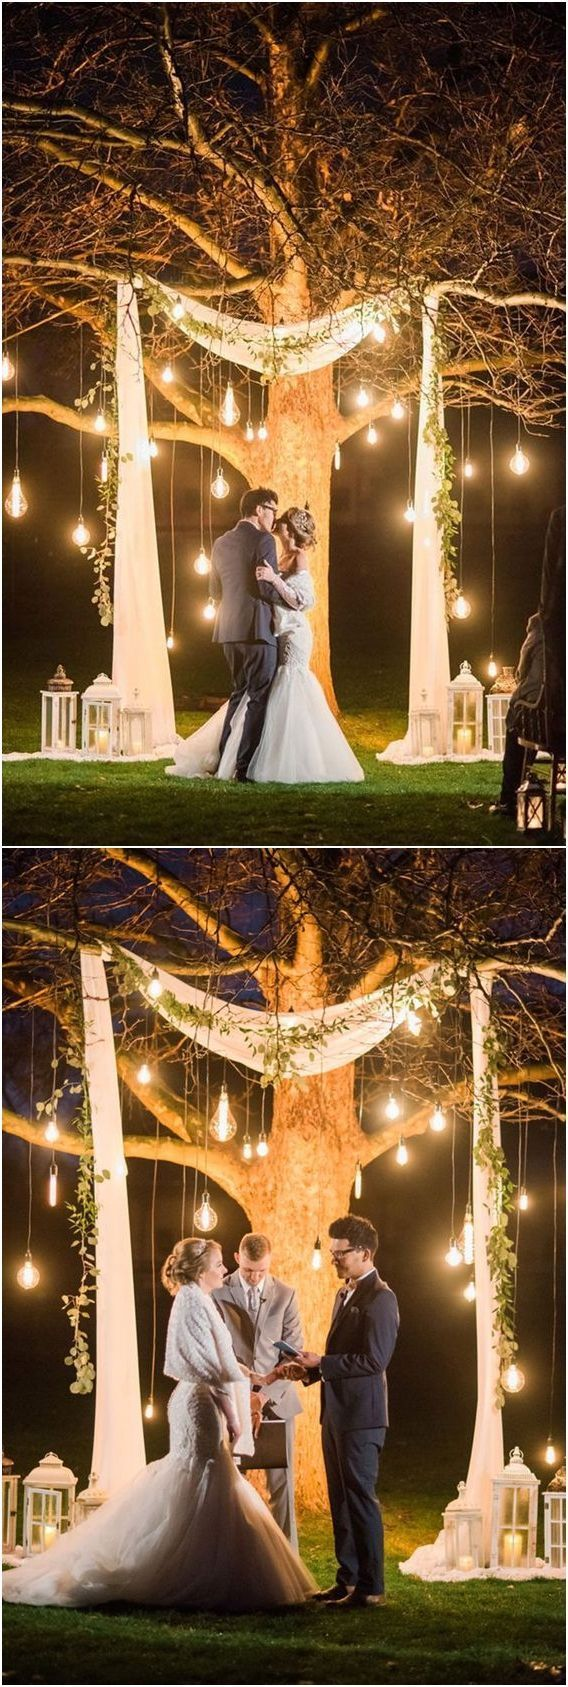 Top 20 Wedding Tree Backdrops and Arches – Gardinen ideen